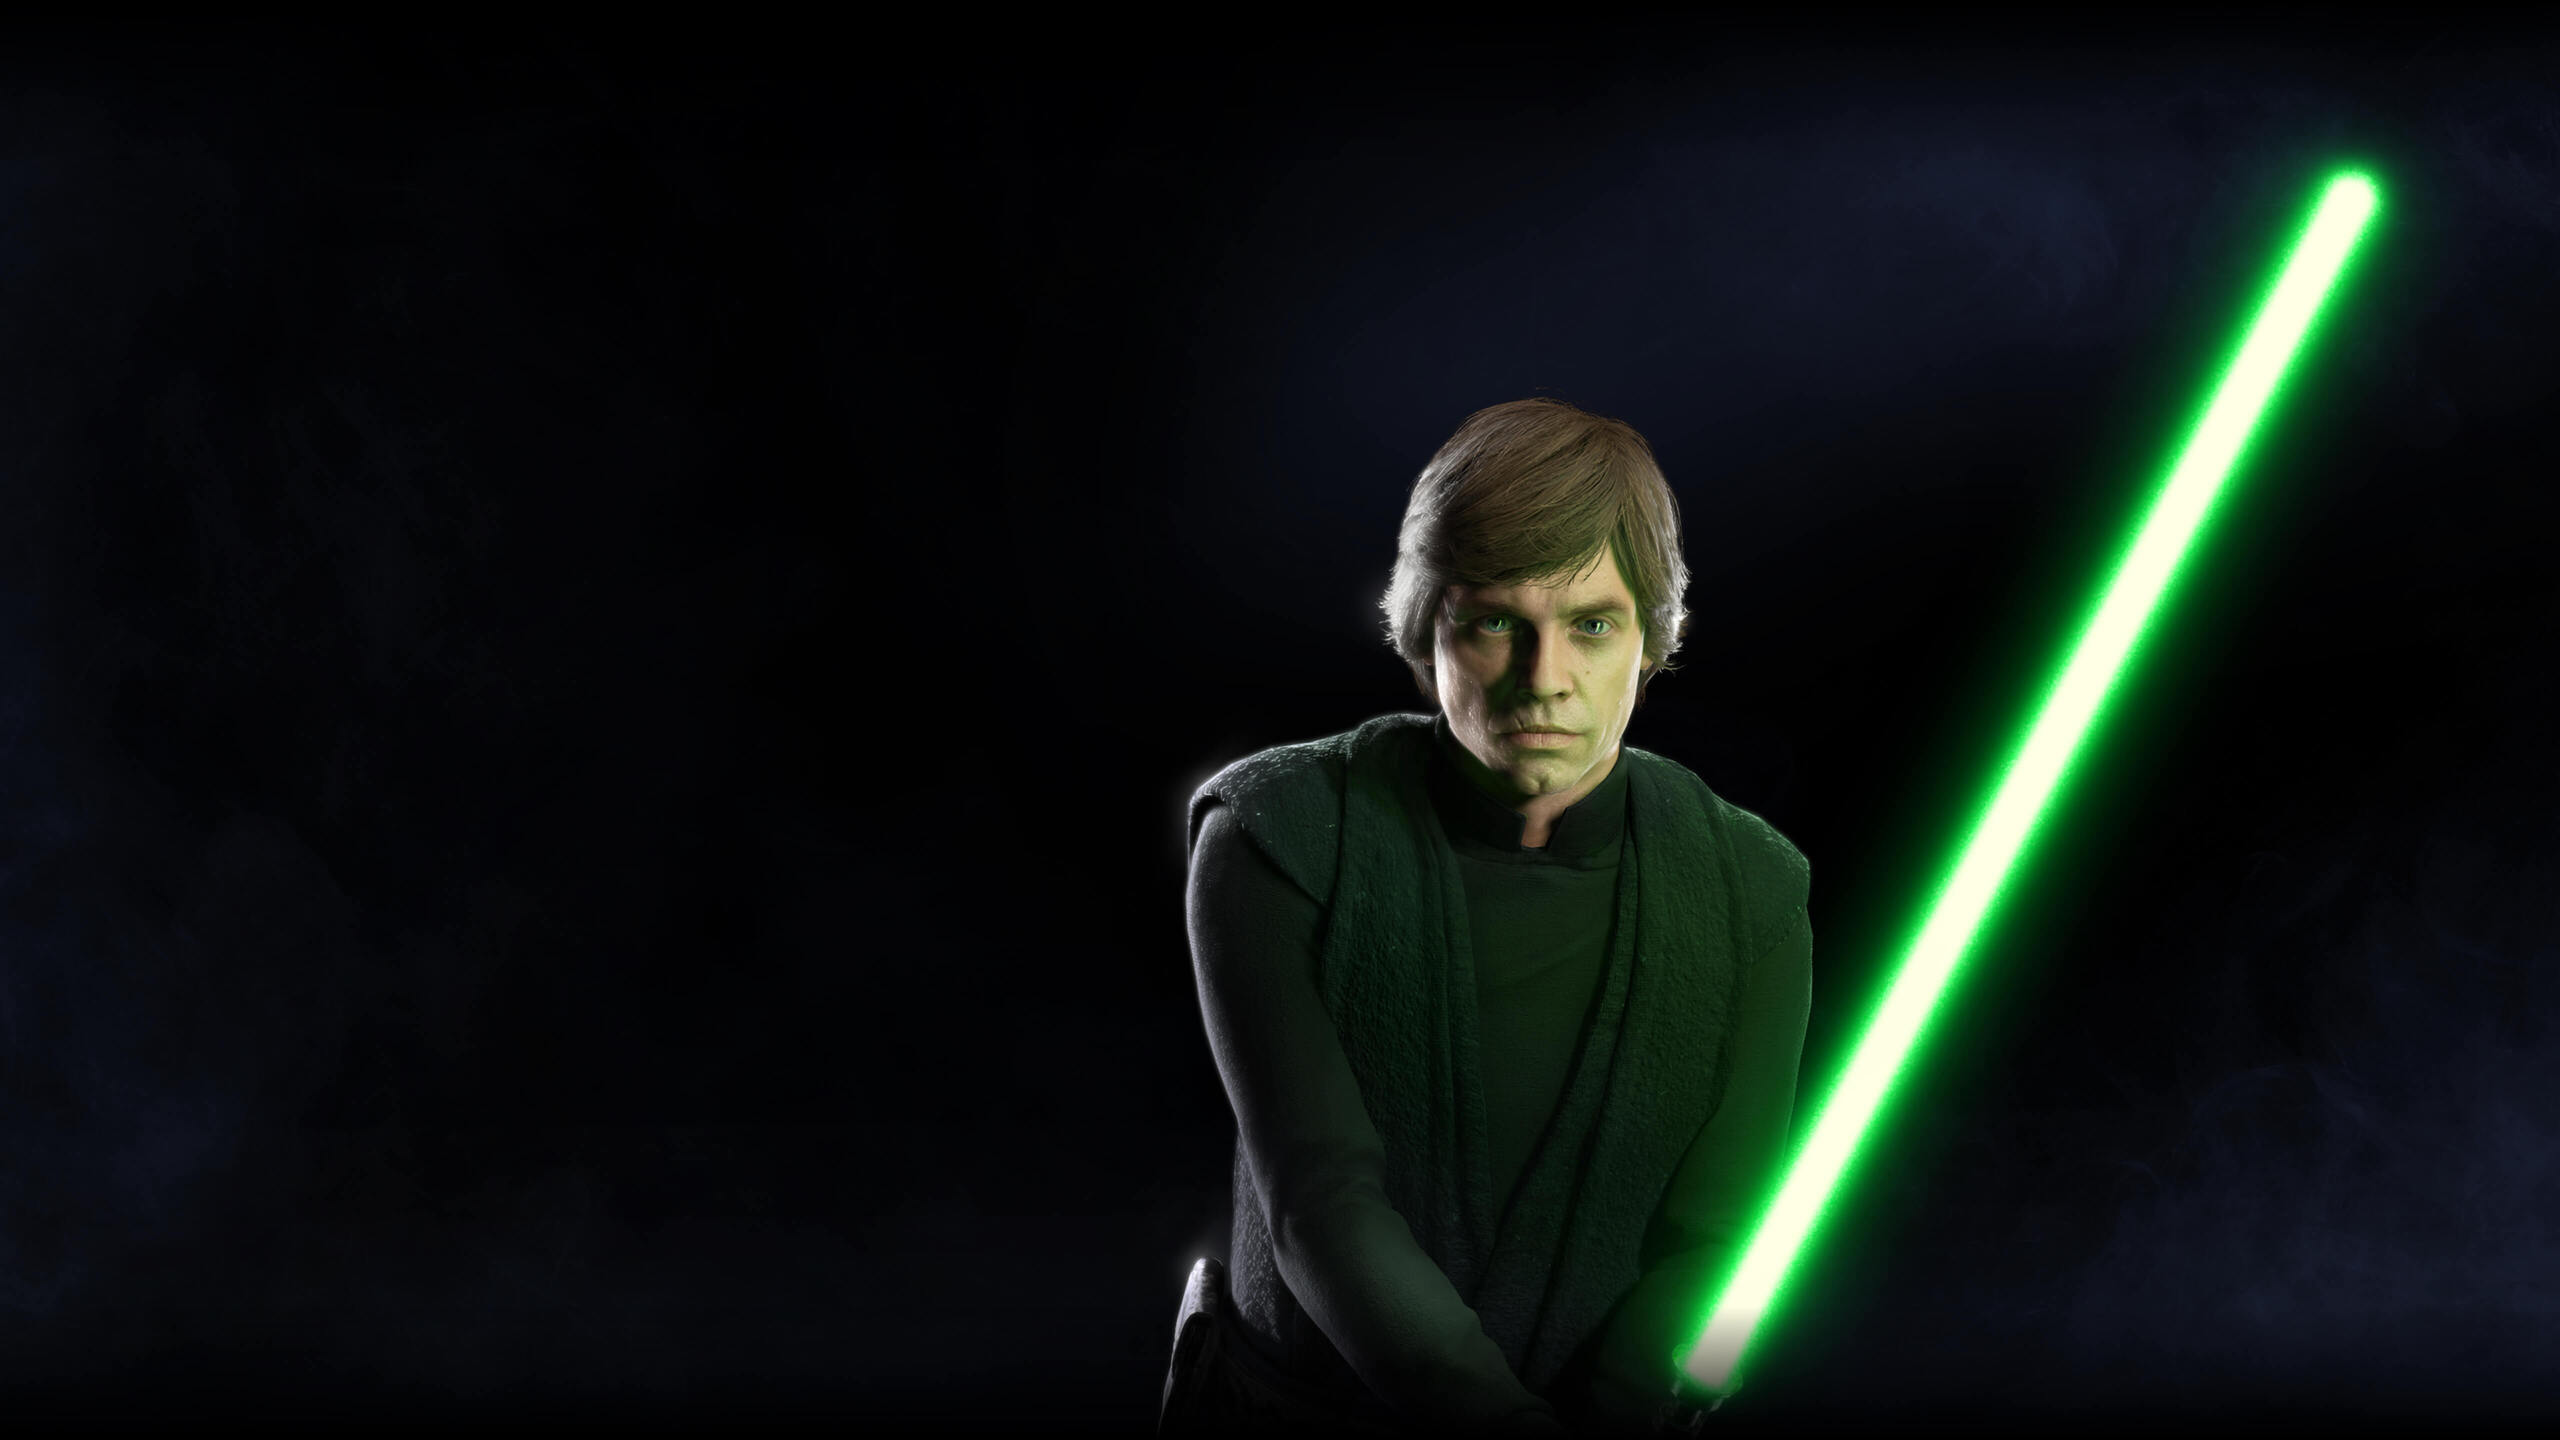 Luke Skywalker a Forcesensitive human male was a Jedi Knight who fought for the Alliance to Restore the Republic during the Galactic Civil War The son of Jedi